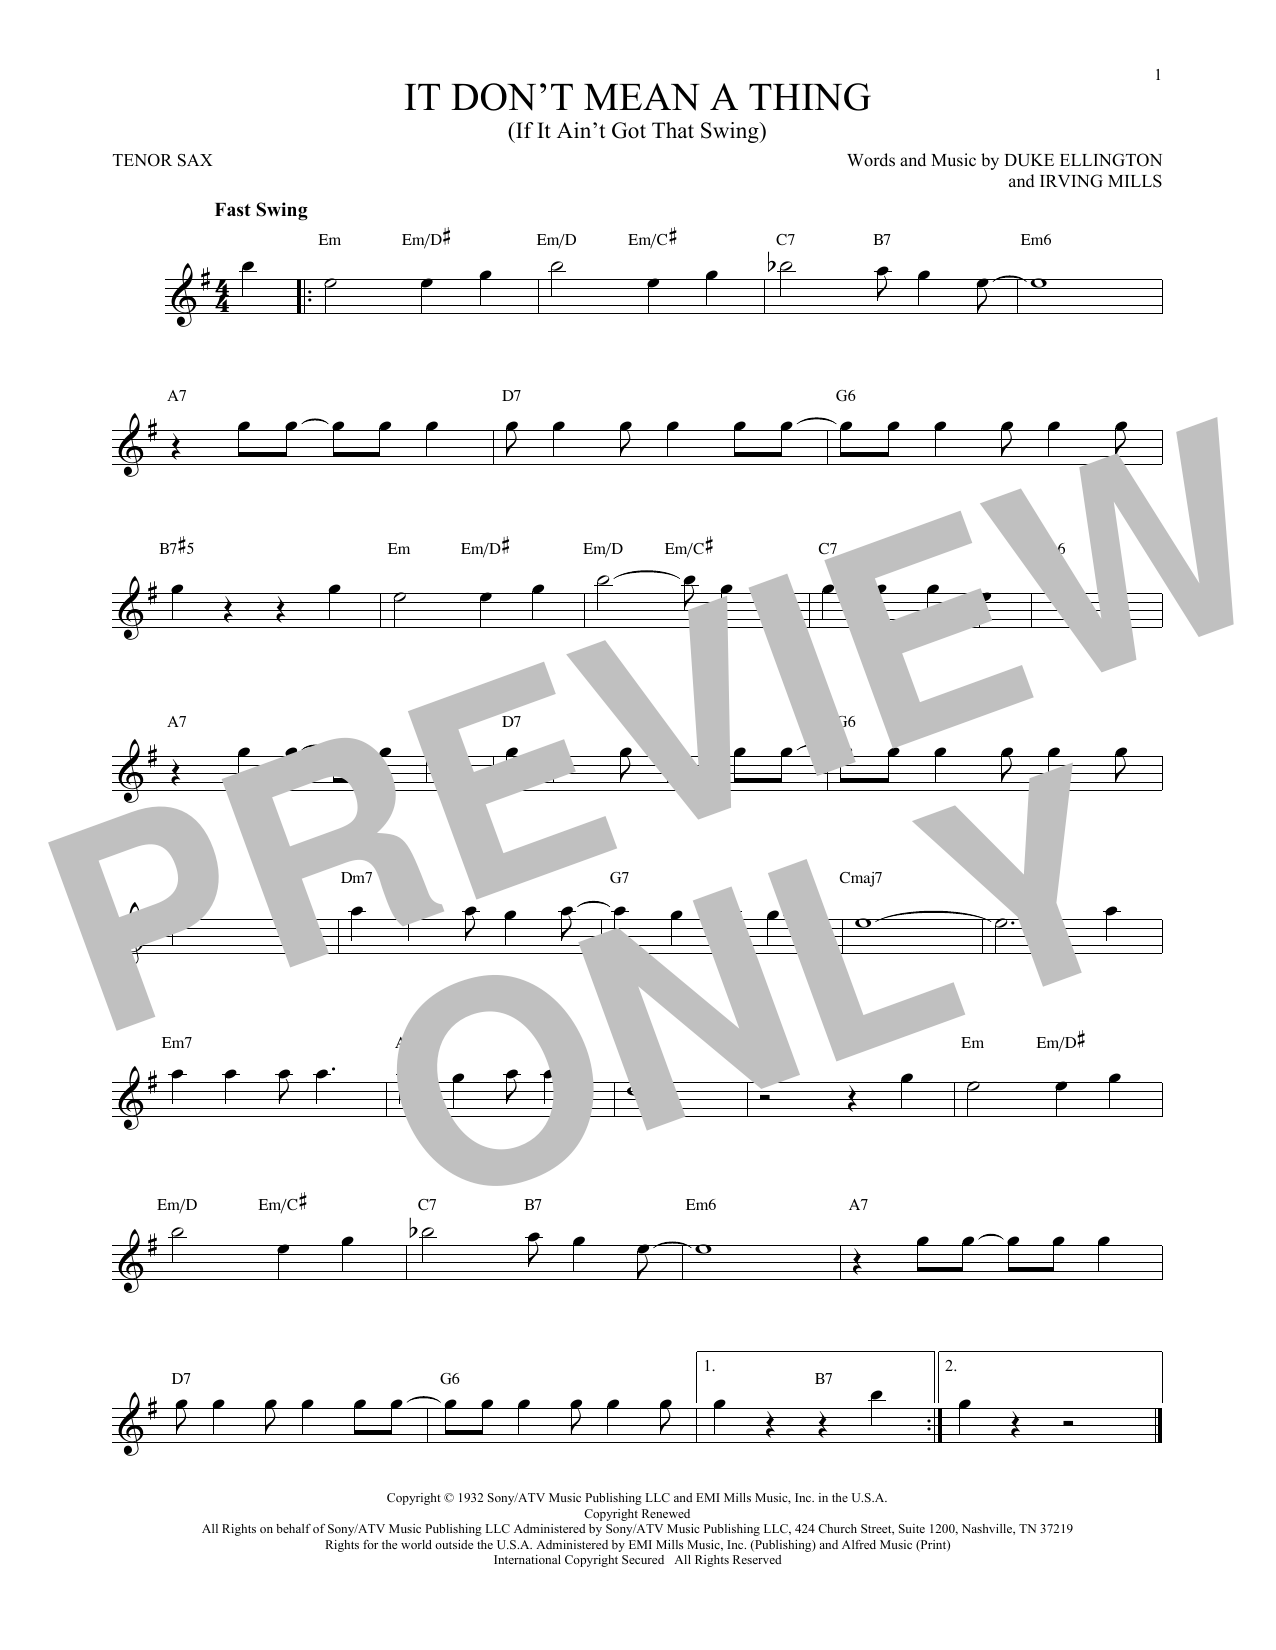 It Don't Mean A Thing (If It Ain't Got That Swing) Sheet Music